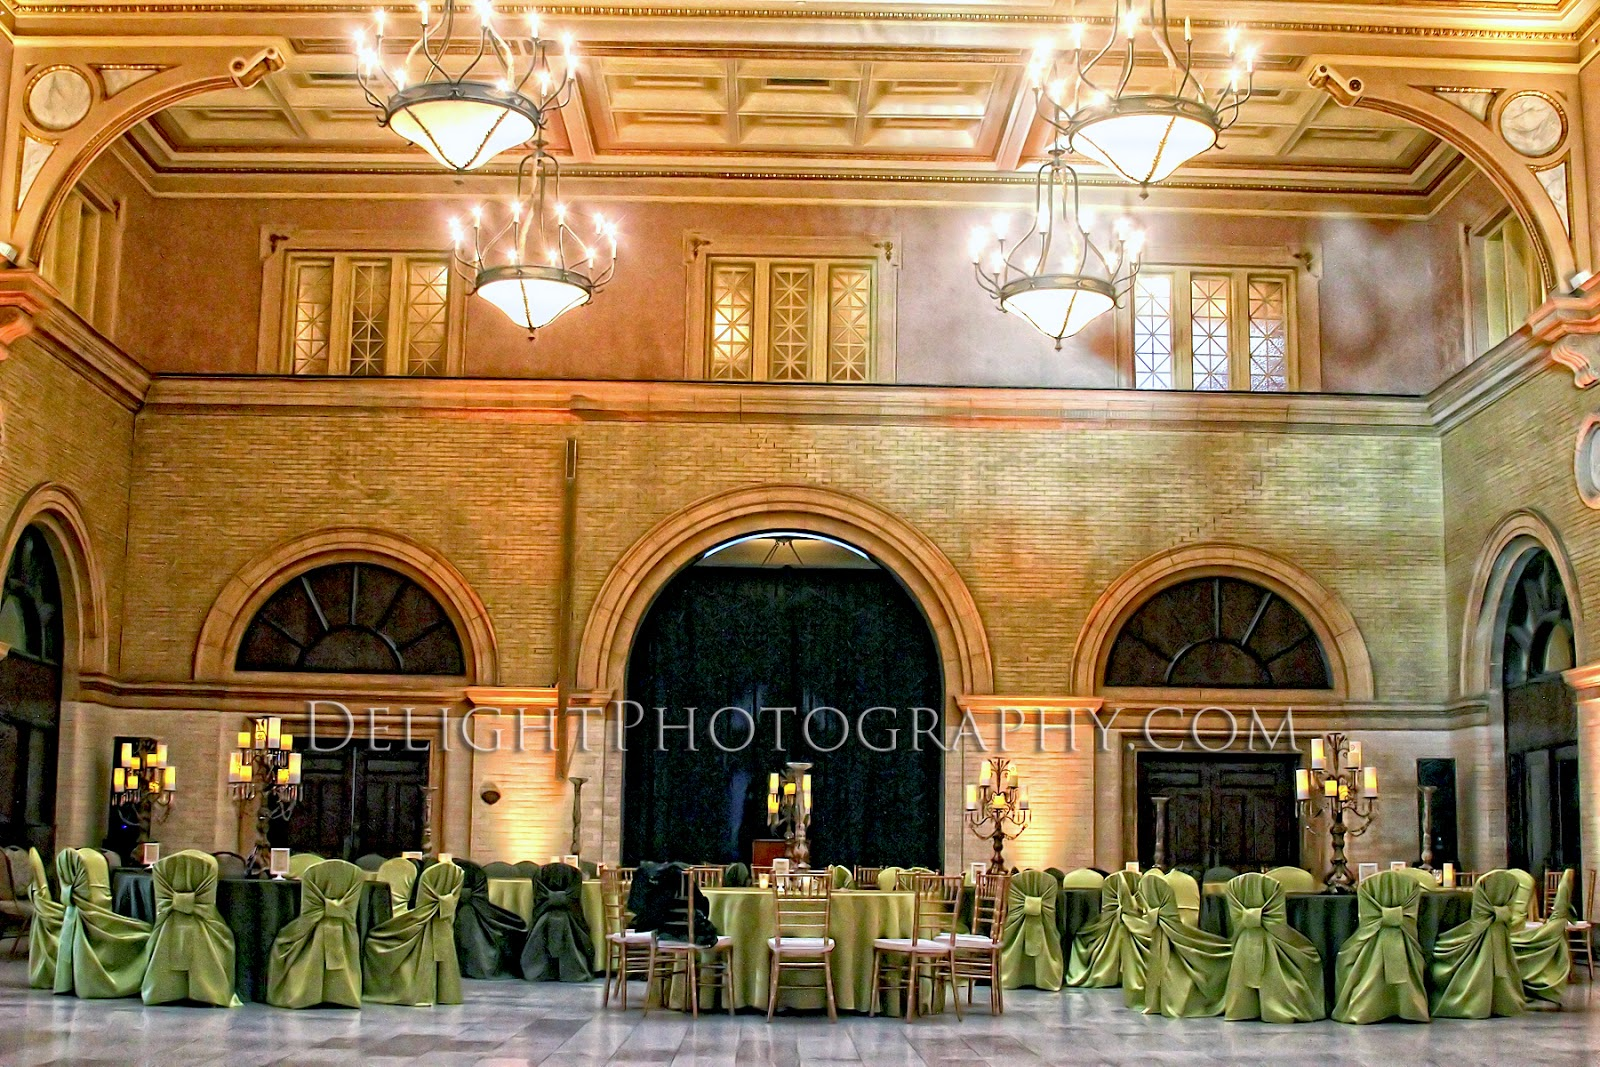 We specialize in hall decorations and wedding rentals, including set up and take down at no additional cost.